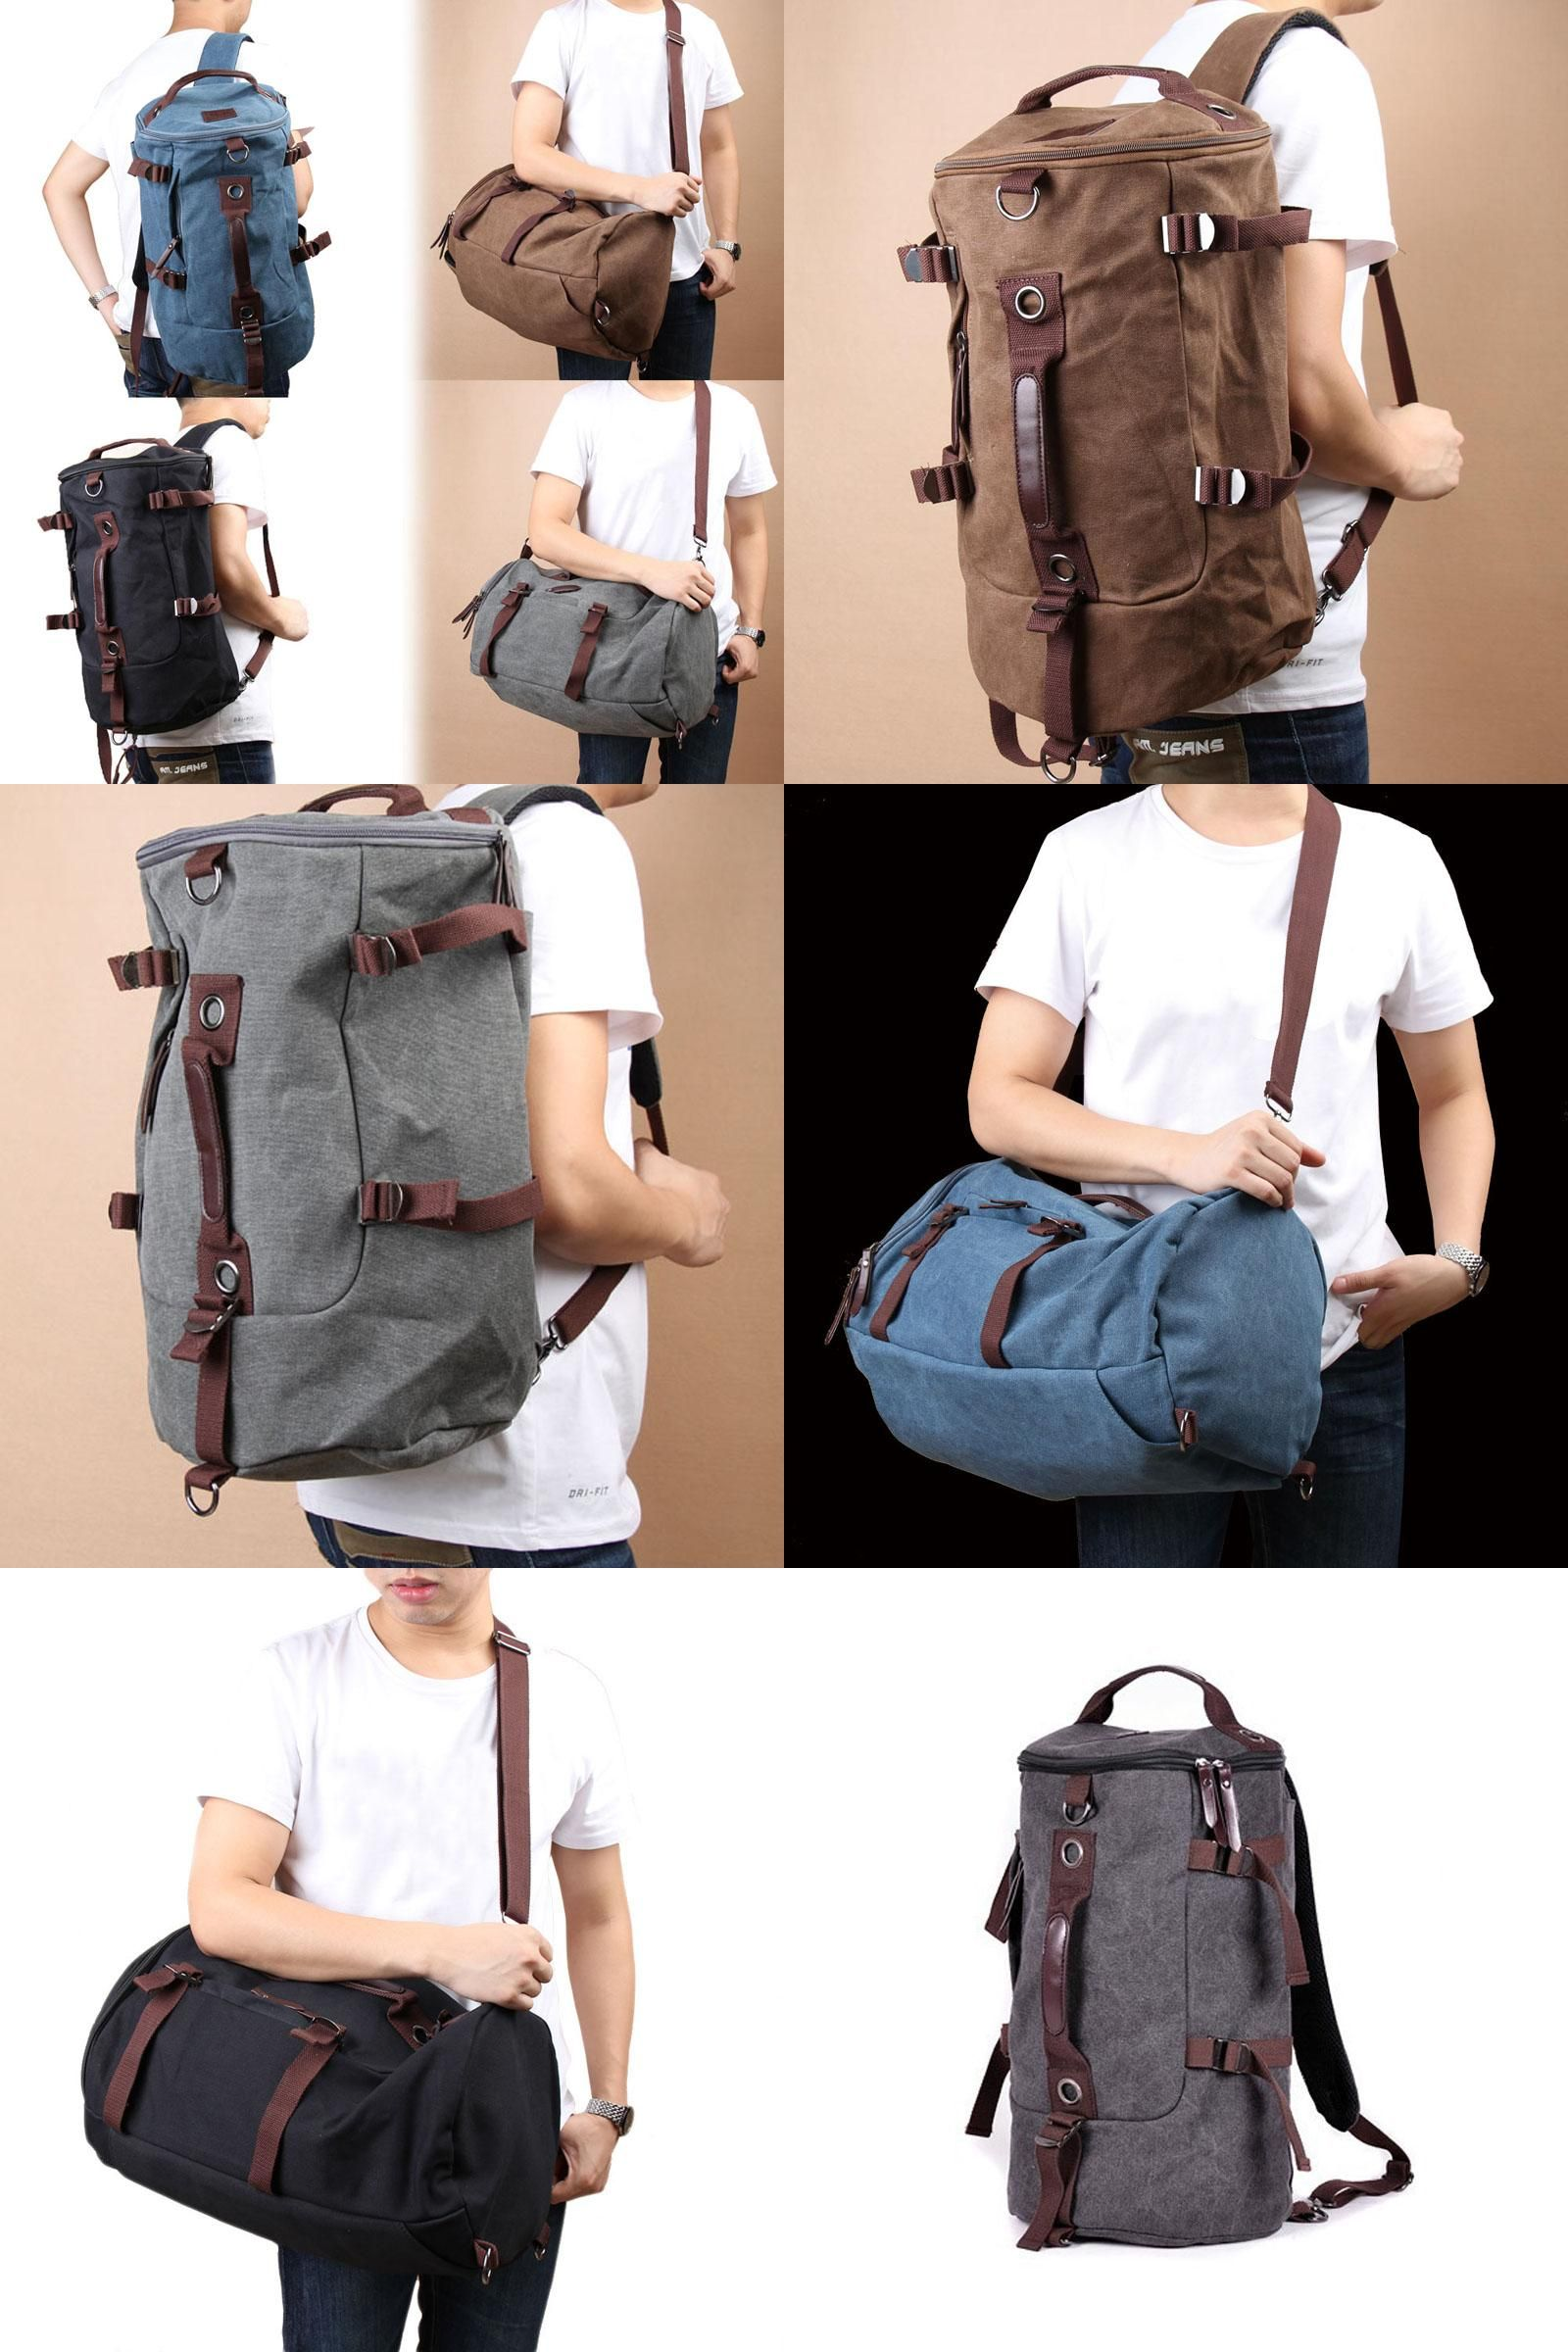 964add7d66a5  Visit to Buy  Hiking Bag Camping Bags Large Capacity Outdoor Vintage Style Canvas  Backpack